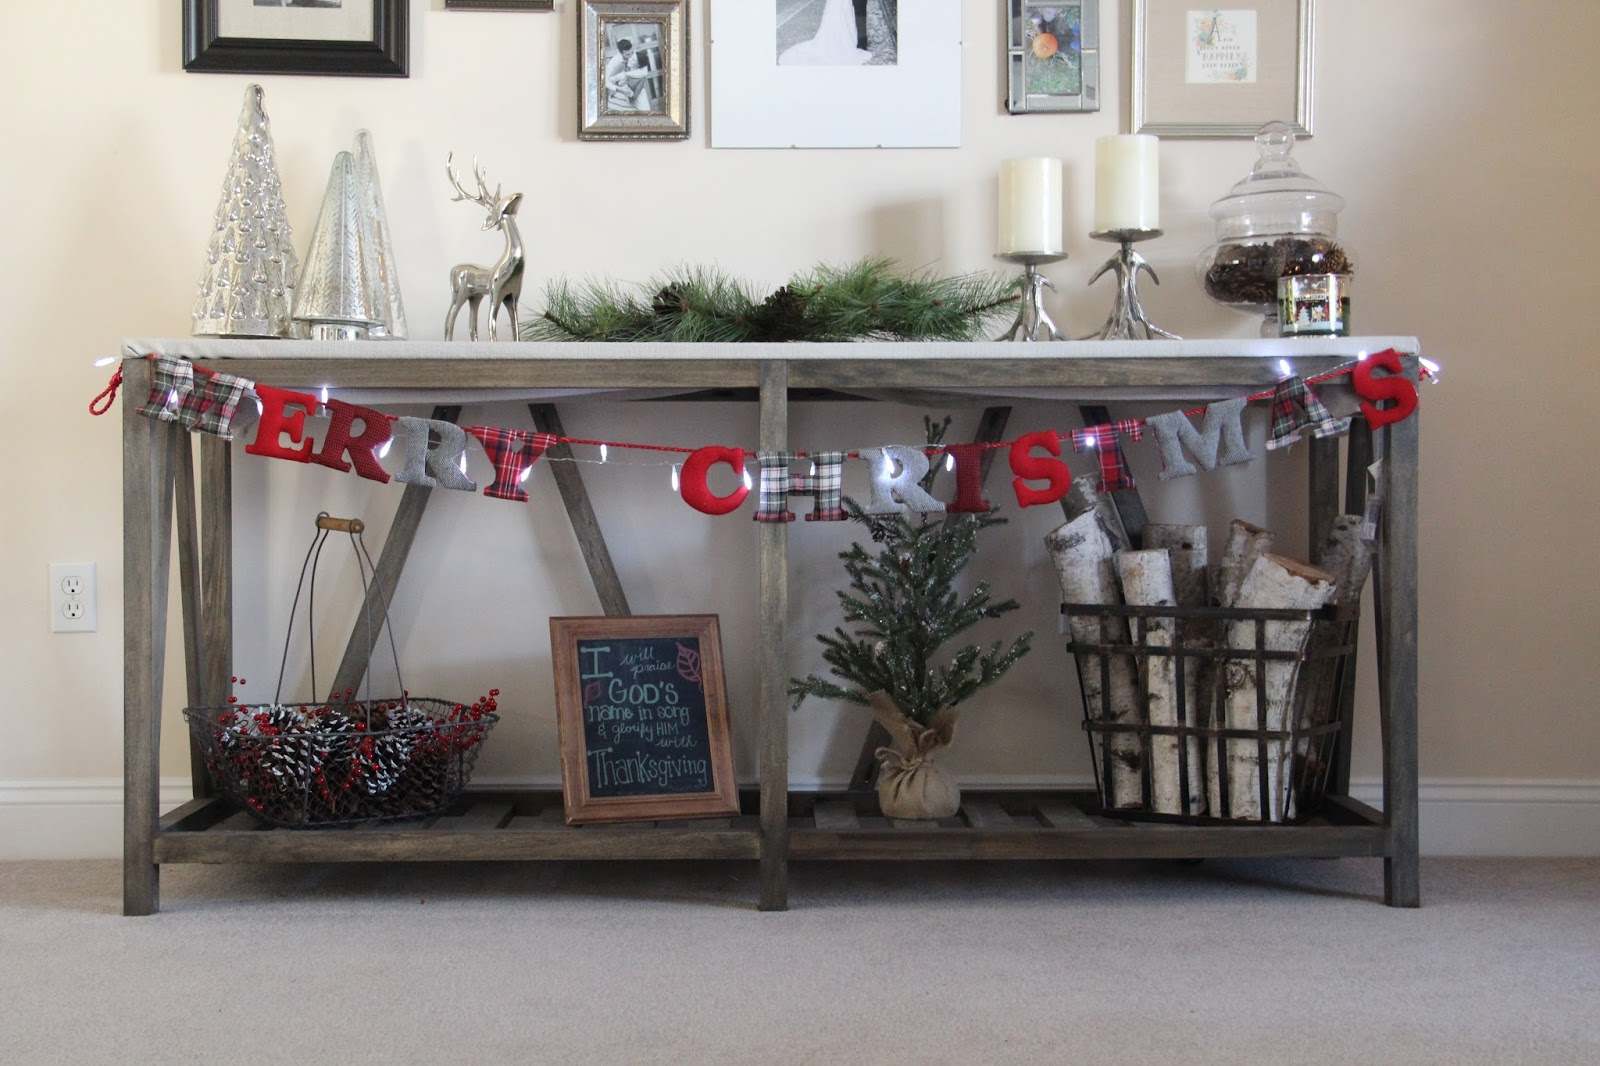 Hill Collection: Christmas Décor, Come On In